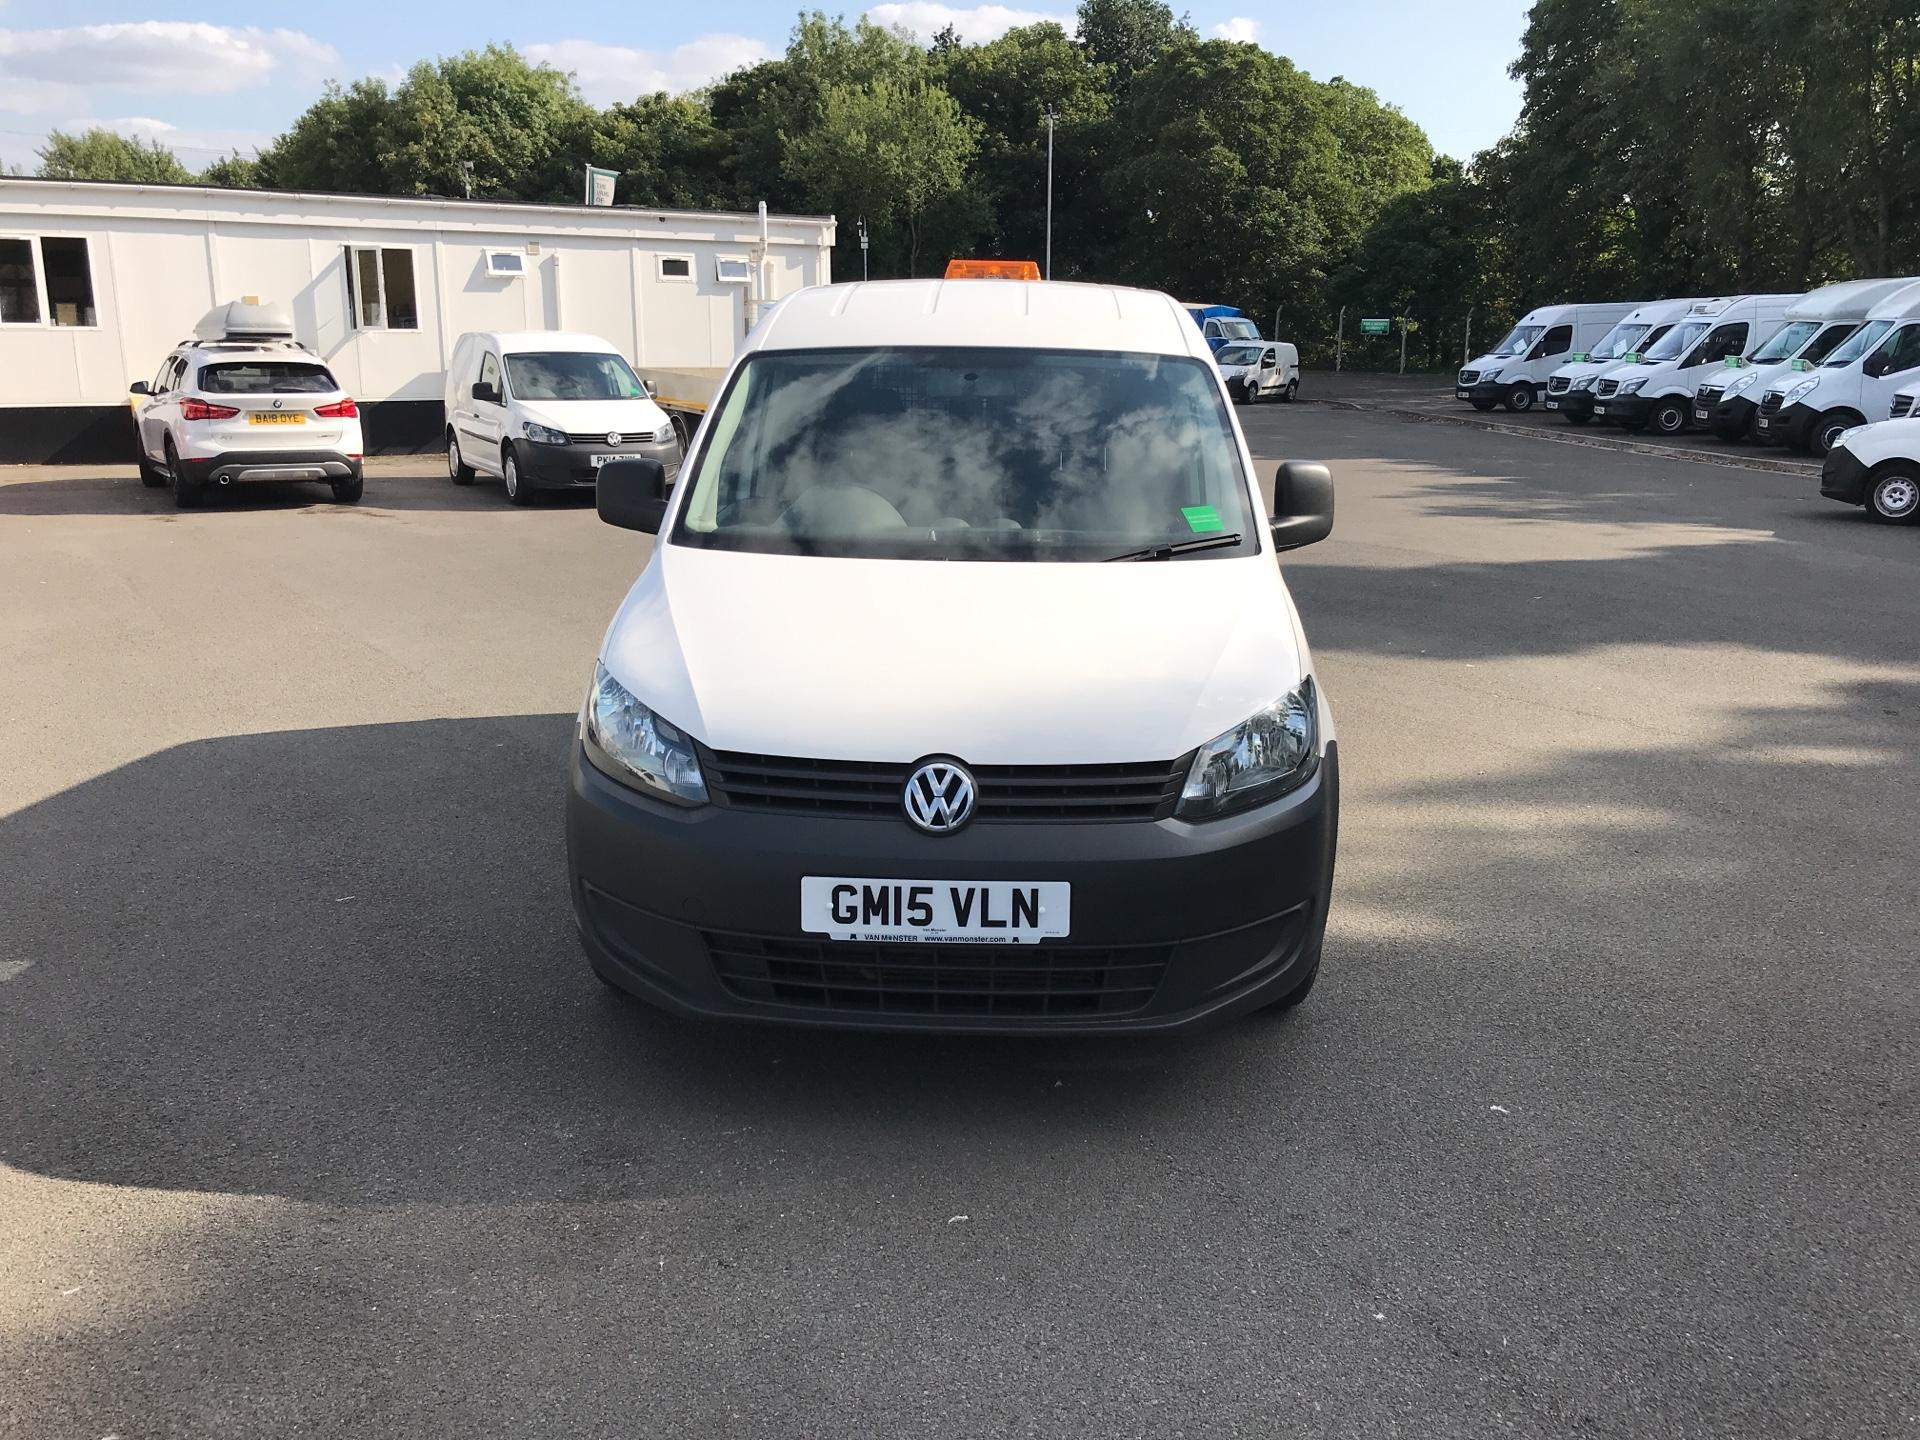 2015 Volkswagen Caddy  1.6 102PS STARTLINE EURO 5  *VALUE RANGE VEHICLE - CONDITION REFLECTED IN PRICE*  (GM15VLN) Image 8